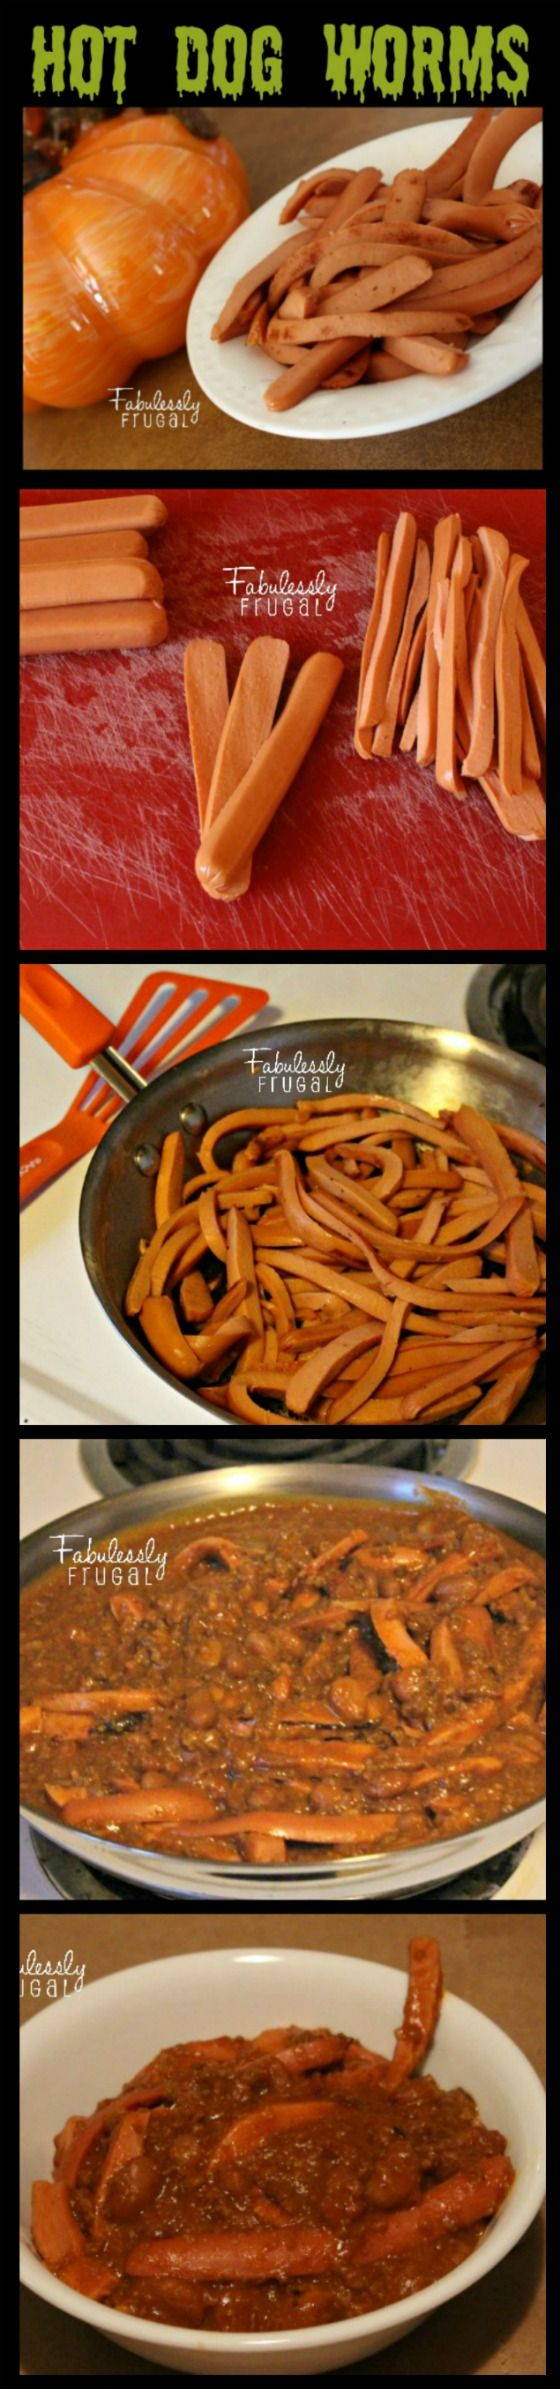 Hot Dog Worms | Fabulessly Frugal: A Coupon Blog sharing Amazon Deals, Printable Coupons, DIY, How to Extreme Coupon, and Make Ahead Meals